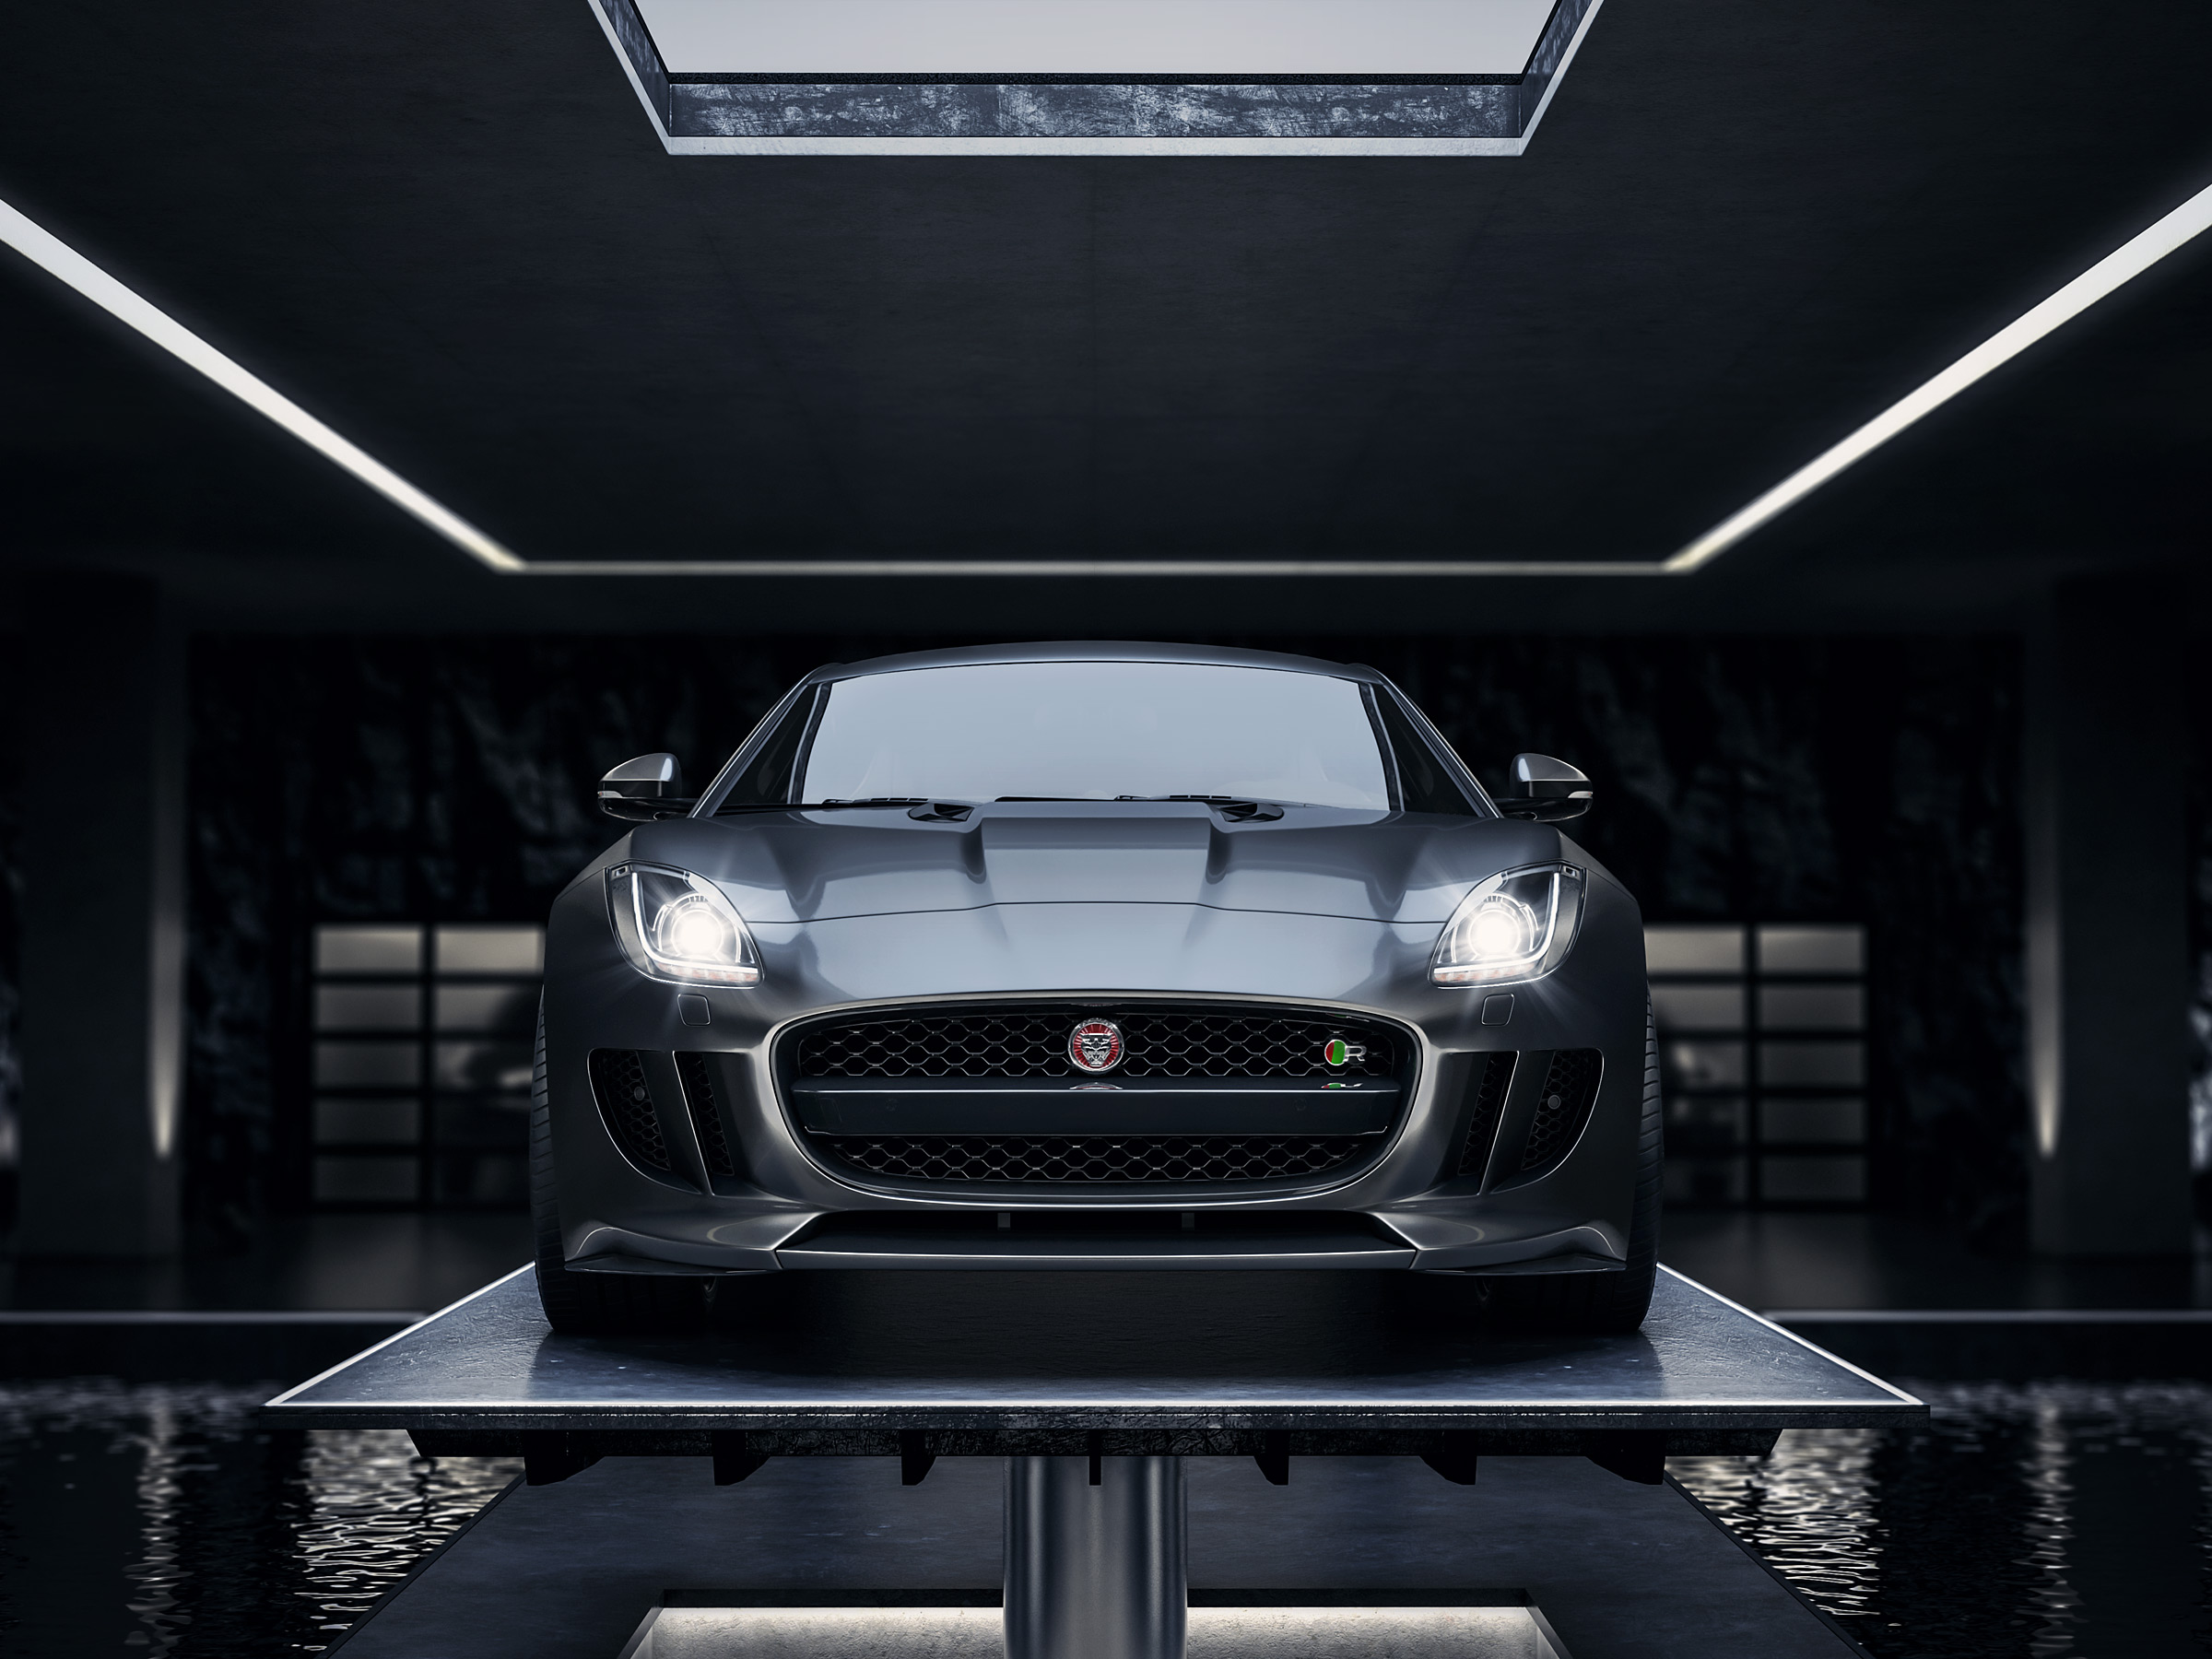 jaguar_ftype_f_type_tank_cgi_retouch_london_post_production_underground_lair_garage_front